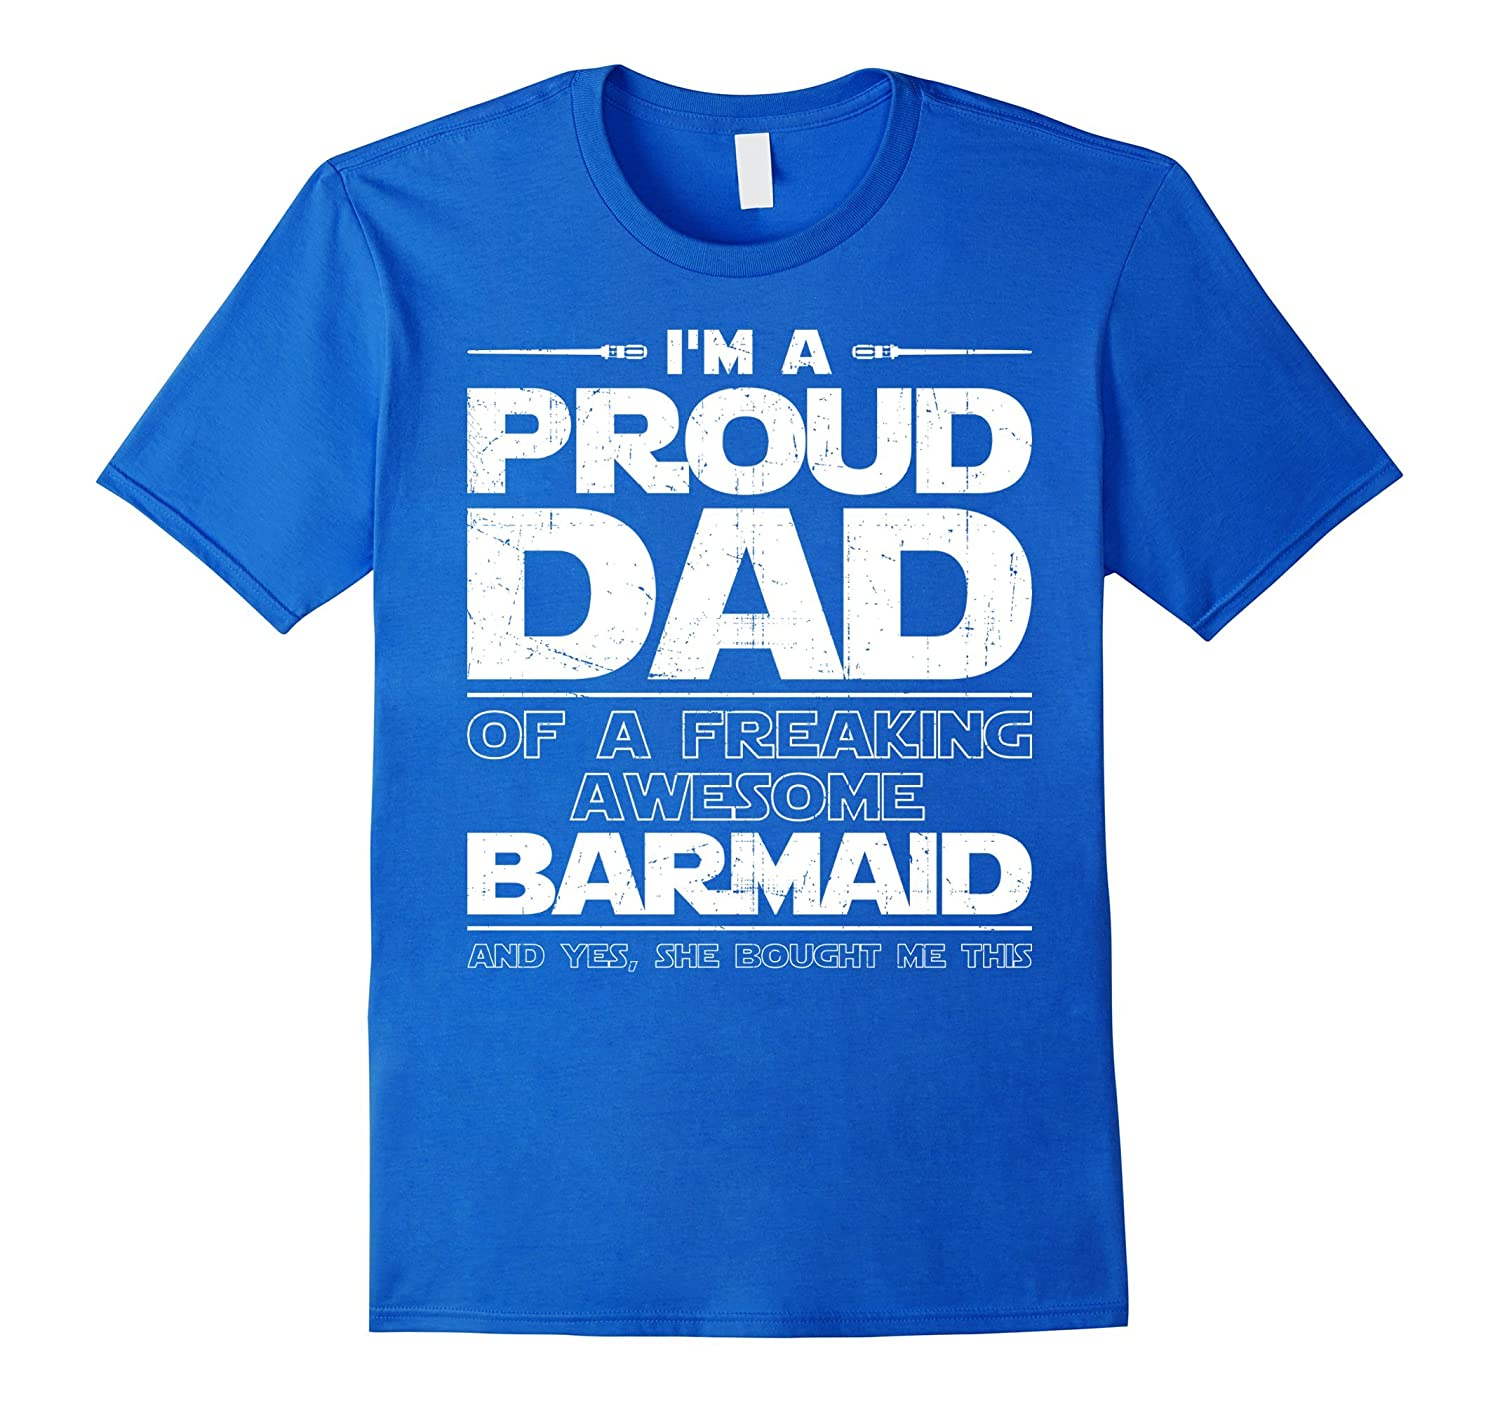 Barmaid Tshirt Proud Dad Of Barmaid T-shirt-PL